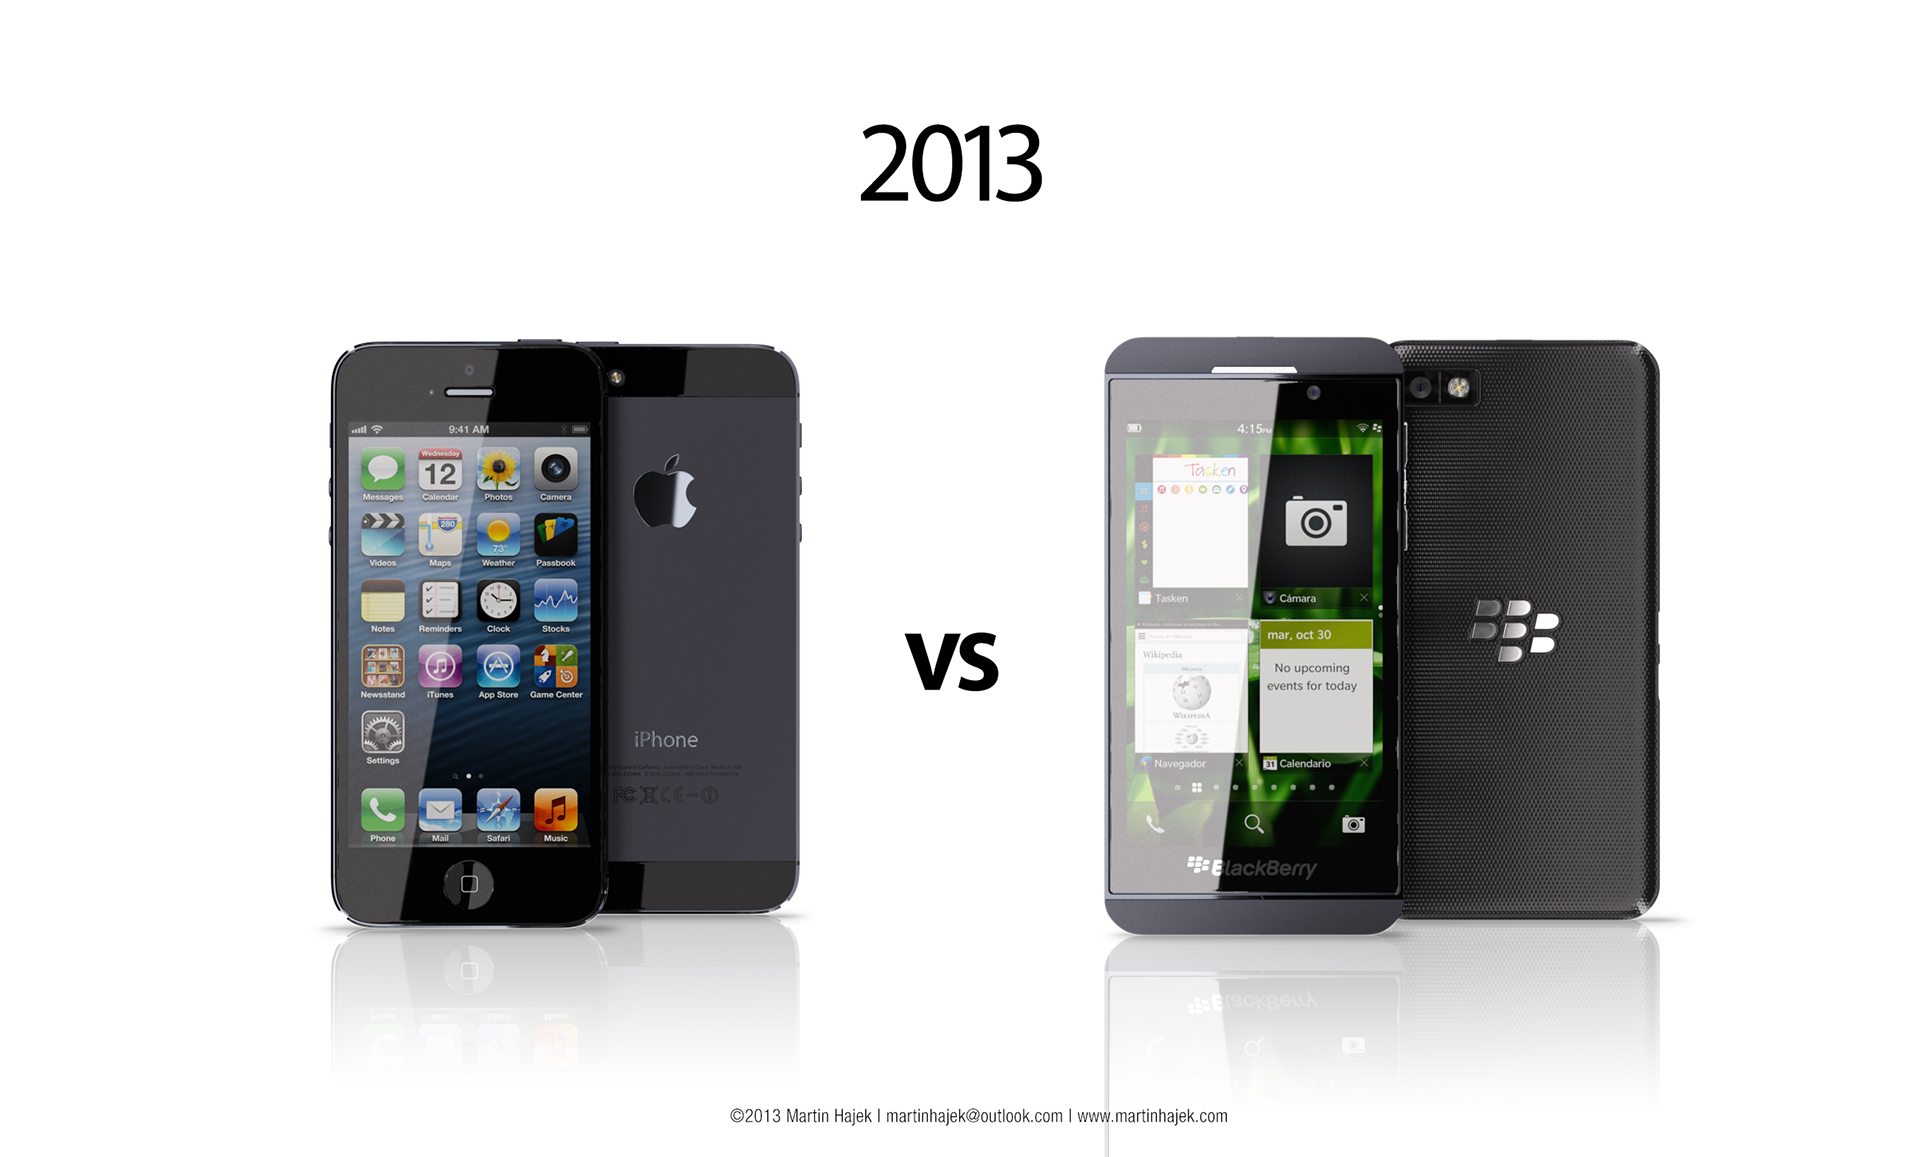 iphone 5 vs z10